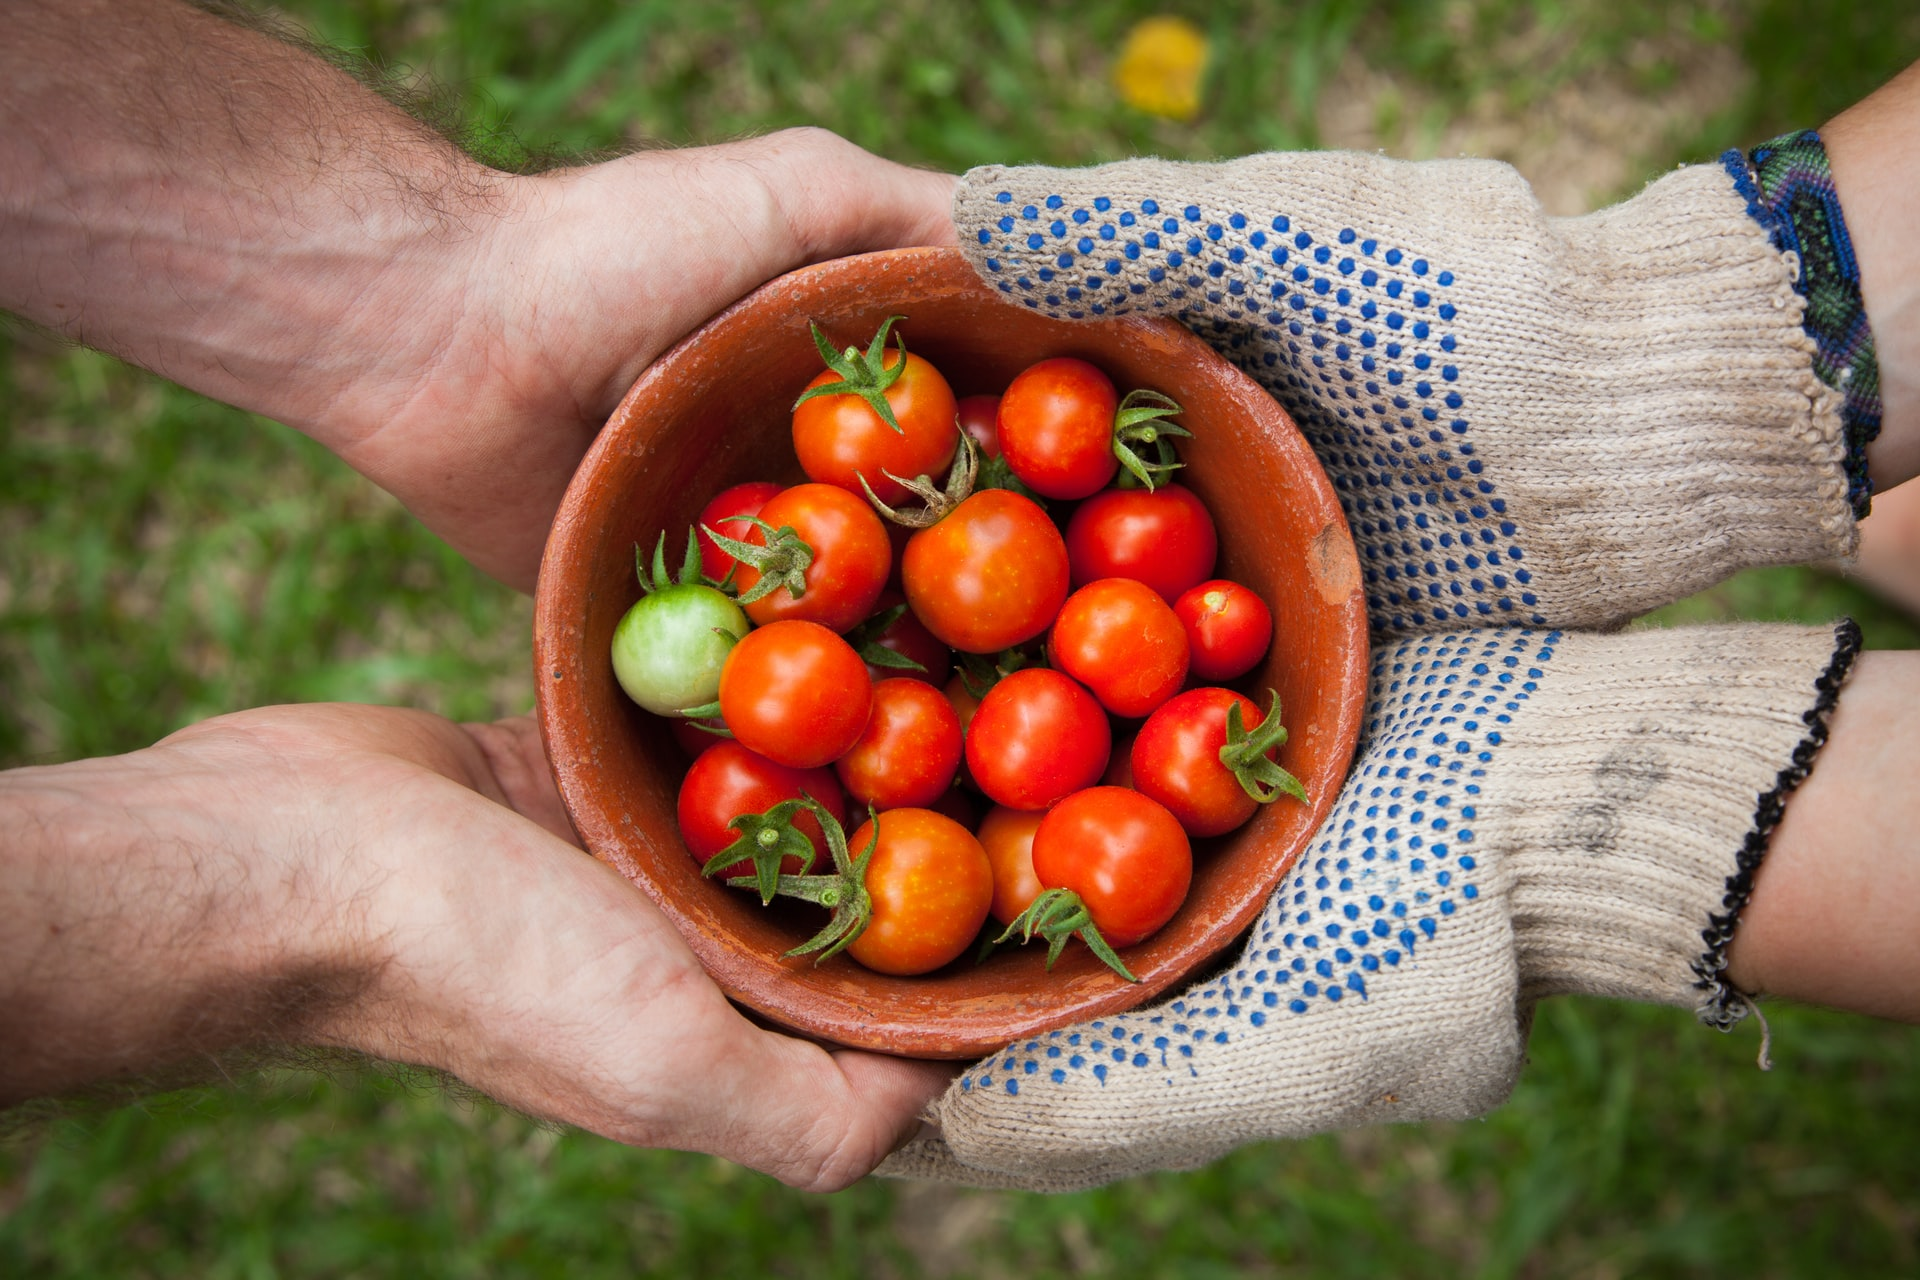 Hands holding a bowl of fresh tomatoes in a vegetable garden